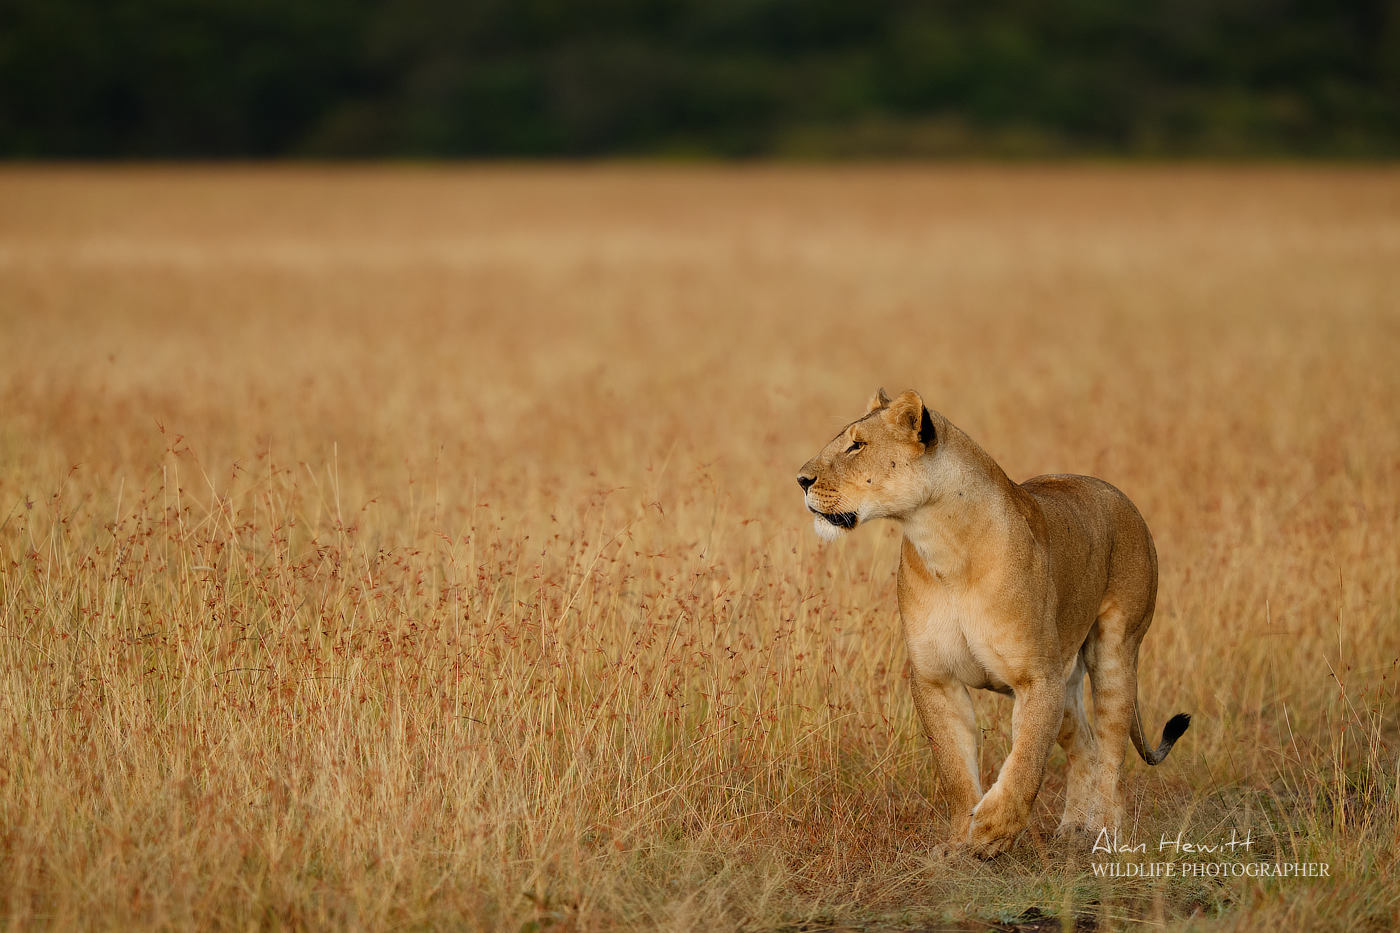 Lioness of the Lemek Pride. Photographed with the Fujifilm X-H1 & Fujinon 200mm f/2 & 1.4x f/2 converter.